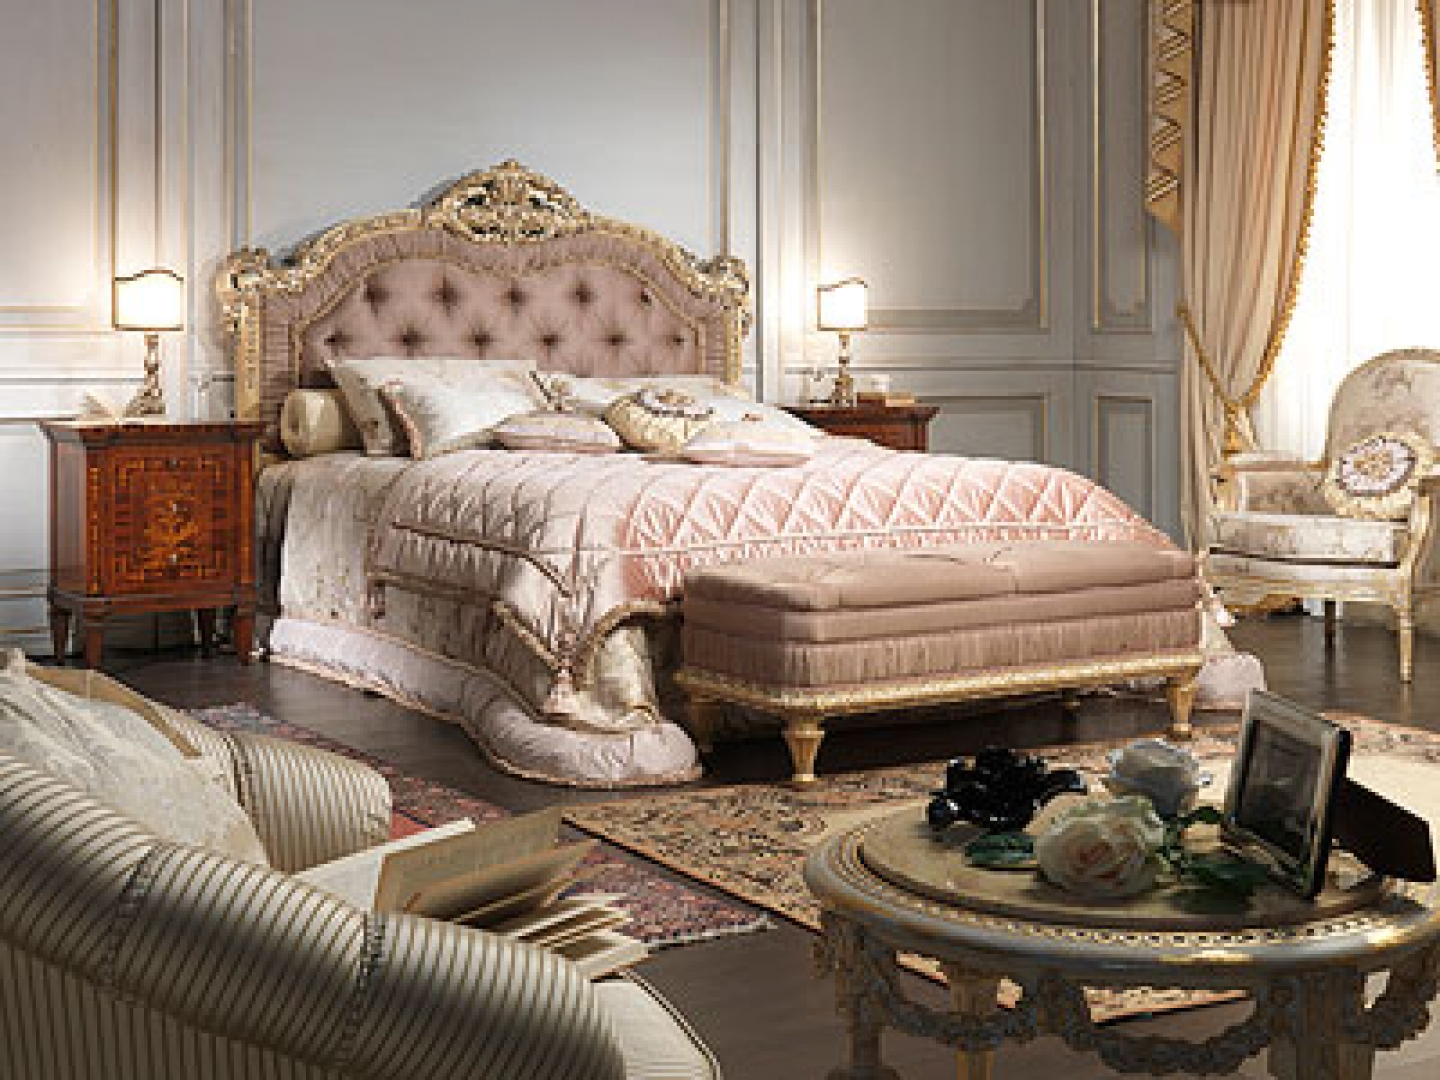 Linge de maison descamps ukbix for Beautiful bedroom design hd images